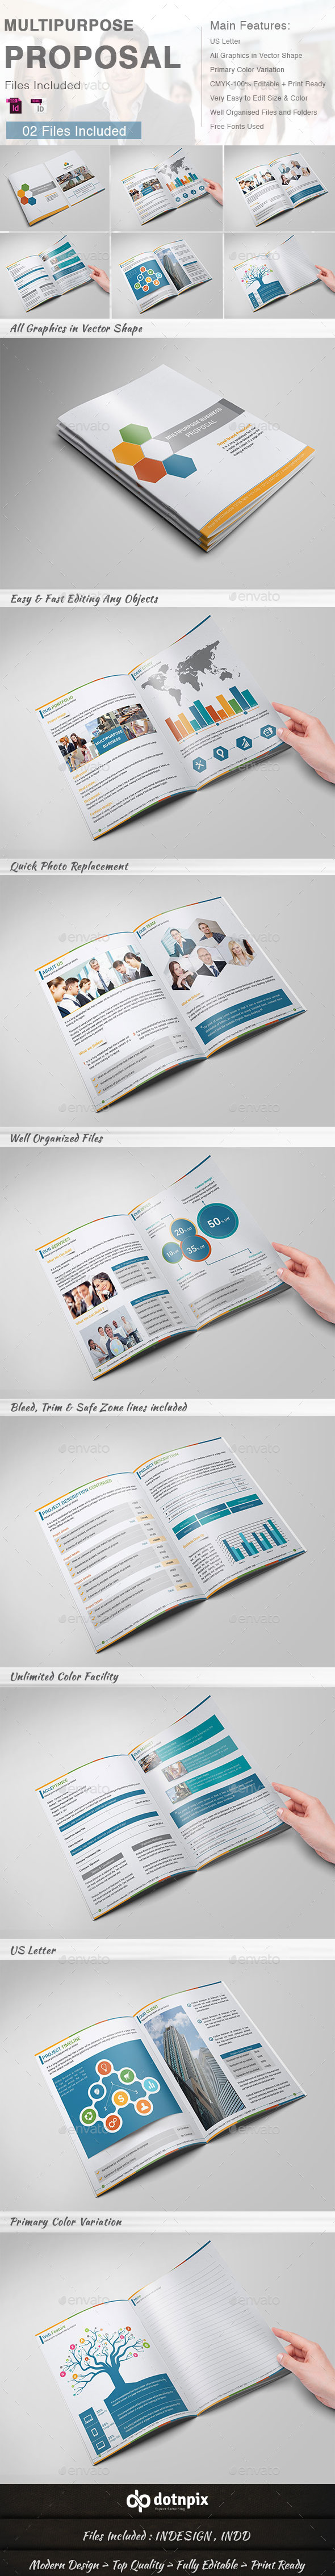 Multipurpose Business Proposal - Proposals & Invoices Stationery